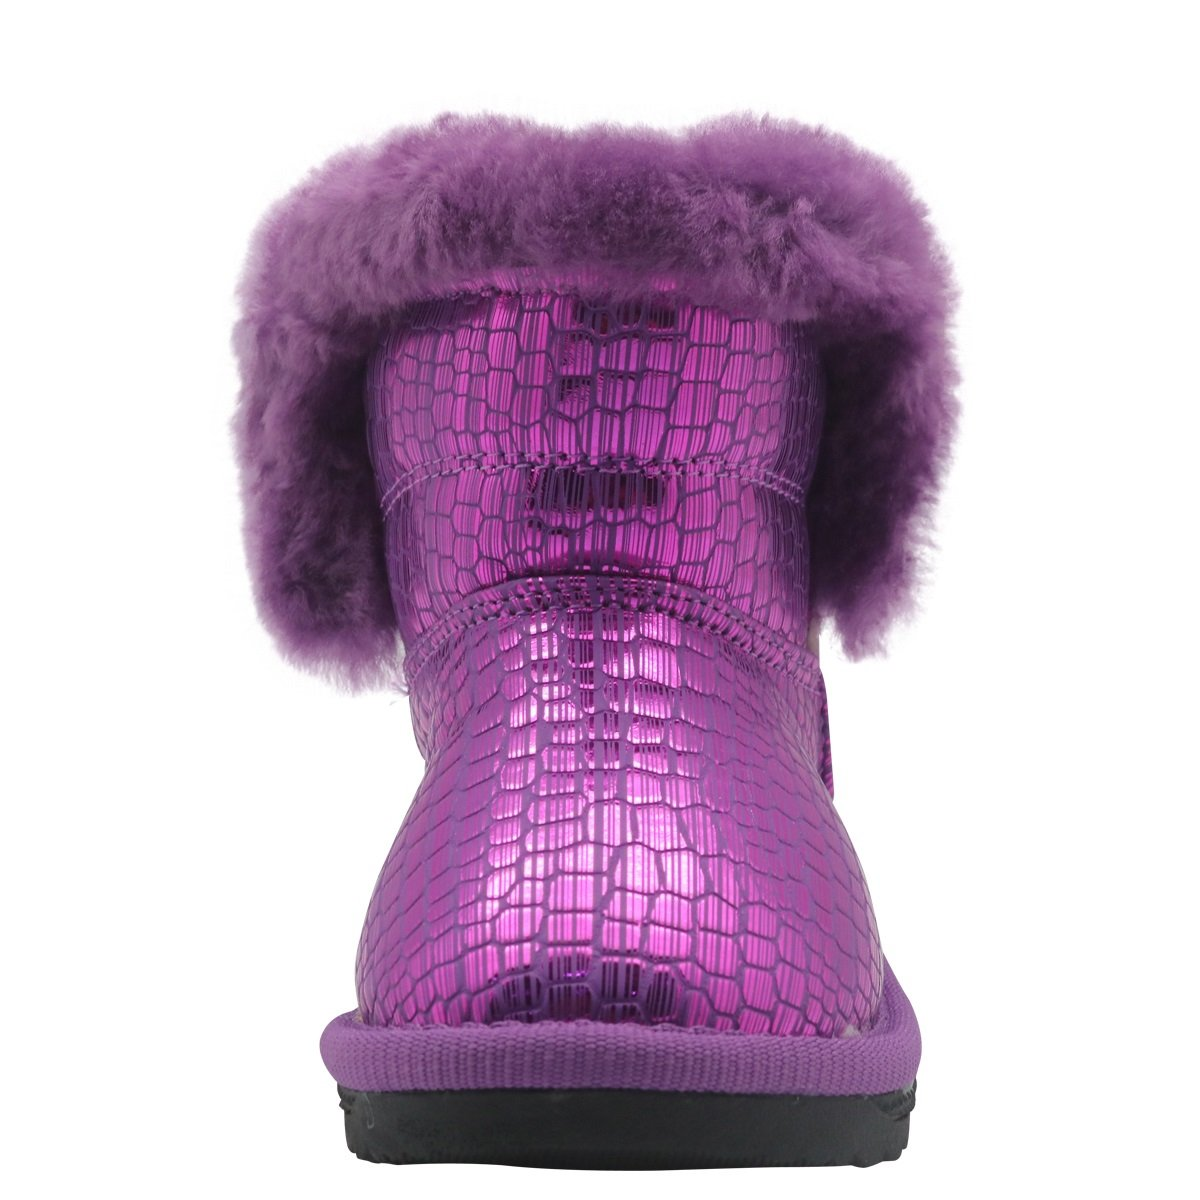 Non-Slip Toddler Shoes Girls Warm Winter Flat Shoes Fur Snow Boots with Woolen Lining Durable Color : Purple , Size : 10 M US Toddler